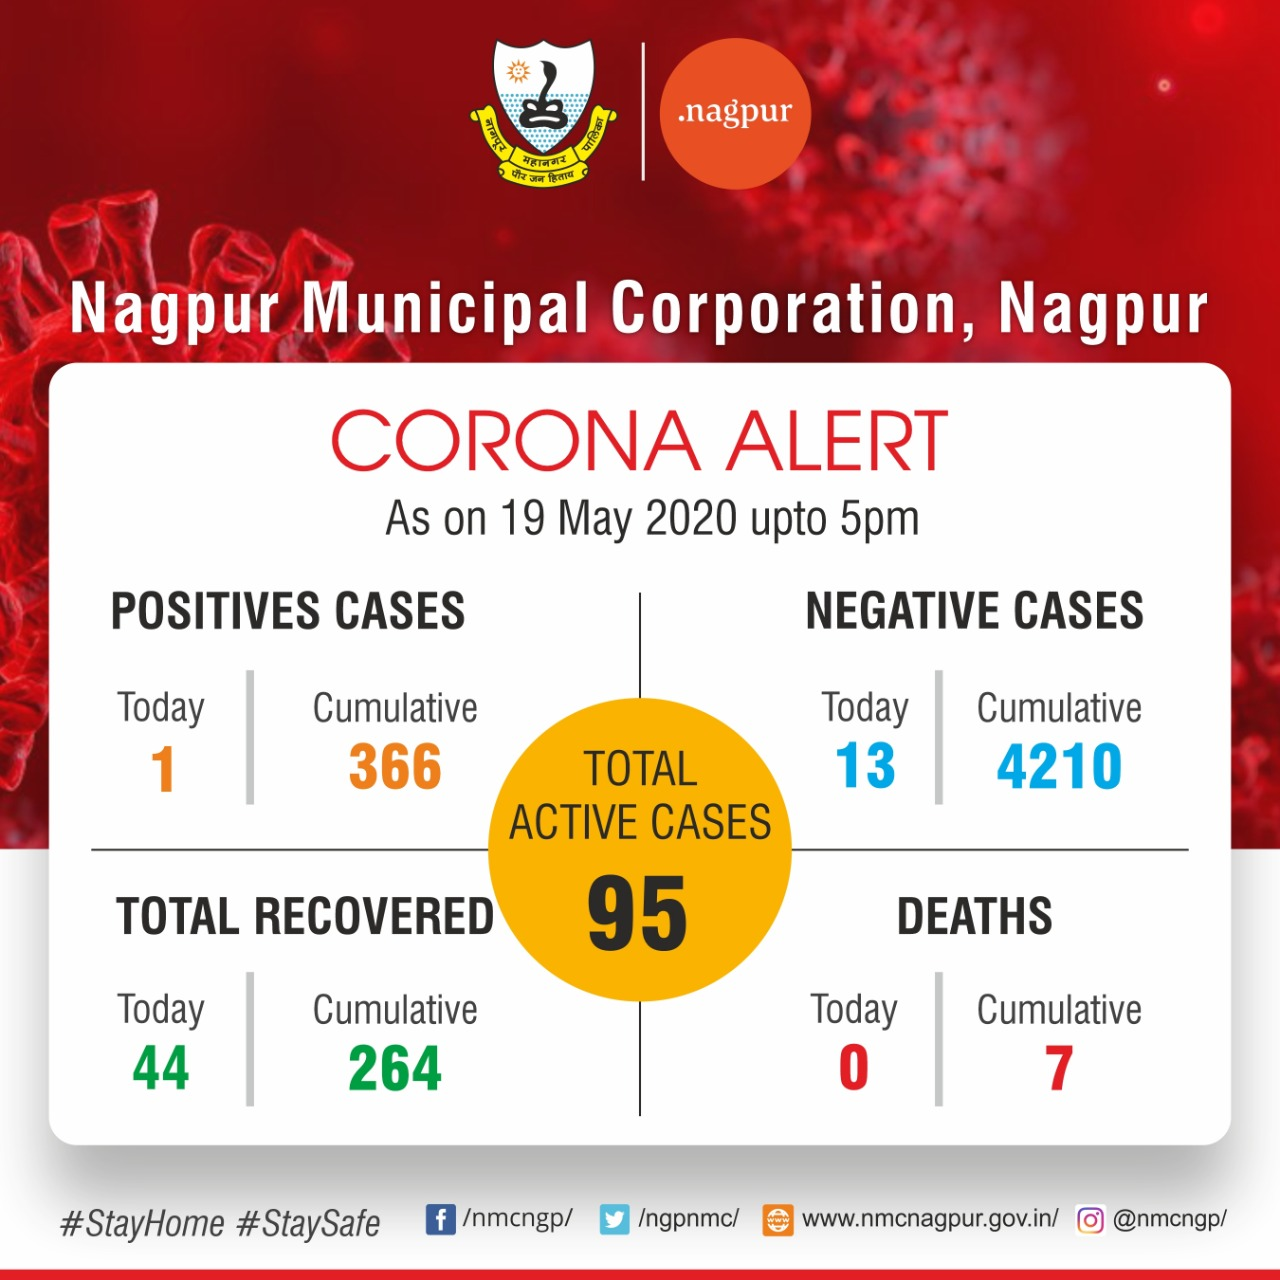 Tuesday, 19 May, 2020: Check out the detailed Nagpur COVID-19 cases that include area wise cases, active cases, red zone areas, etc.